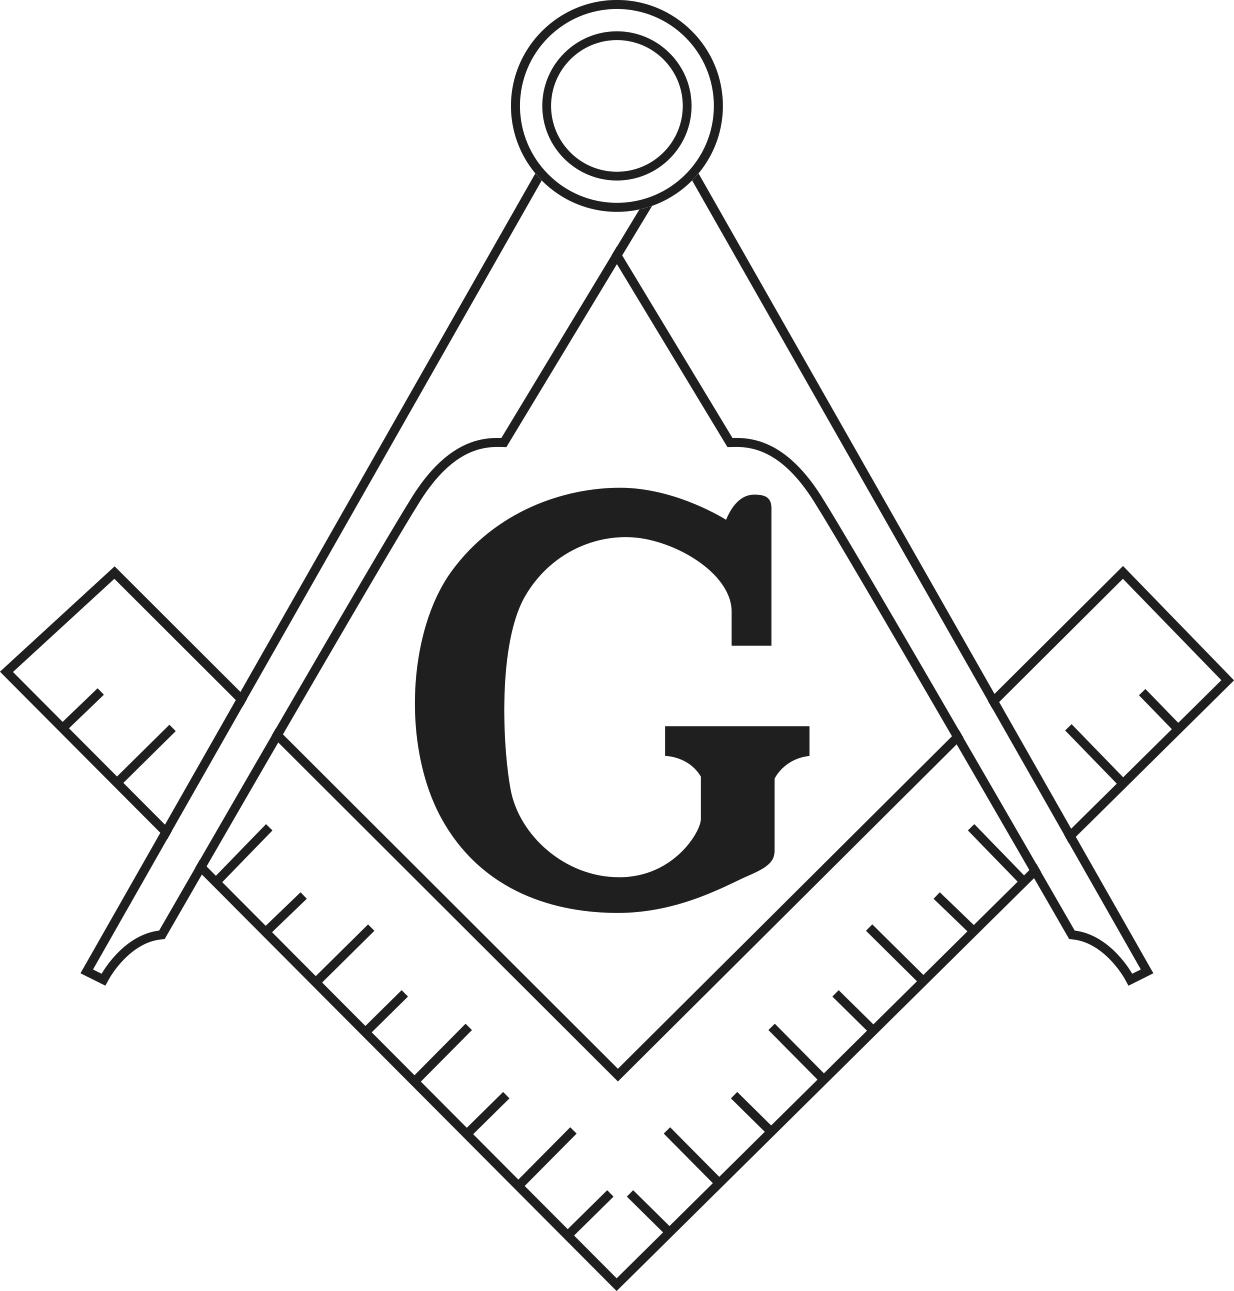 Masonic fraternal organizations greater pittsburgh masonic center the greater pittsburgh masonic center is home to a number of masonic and fraternal organizations buycottarizona